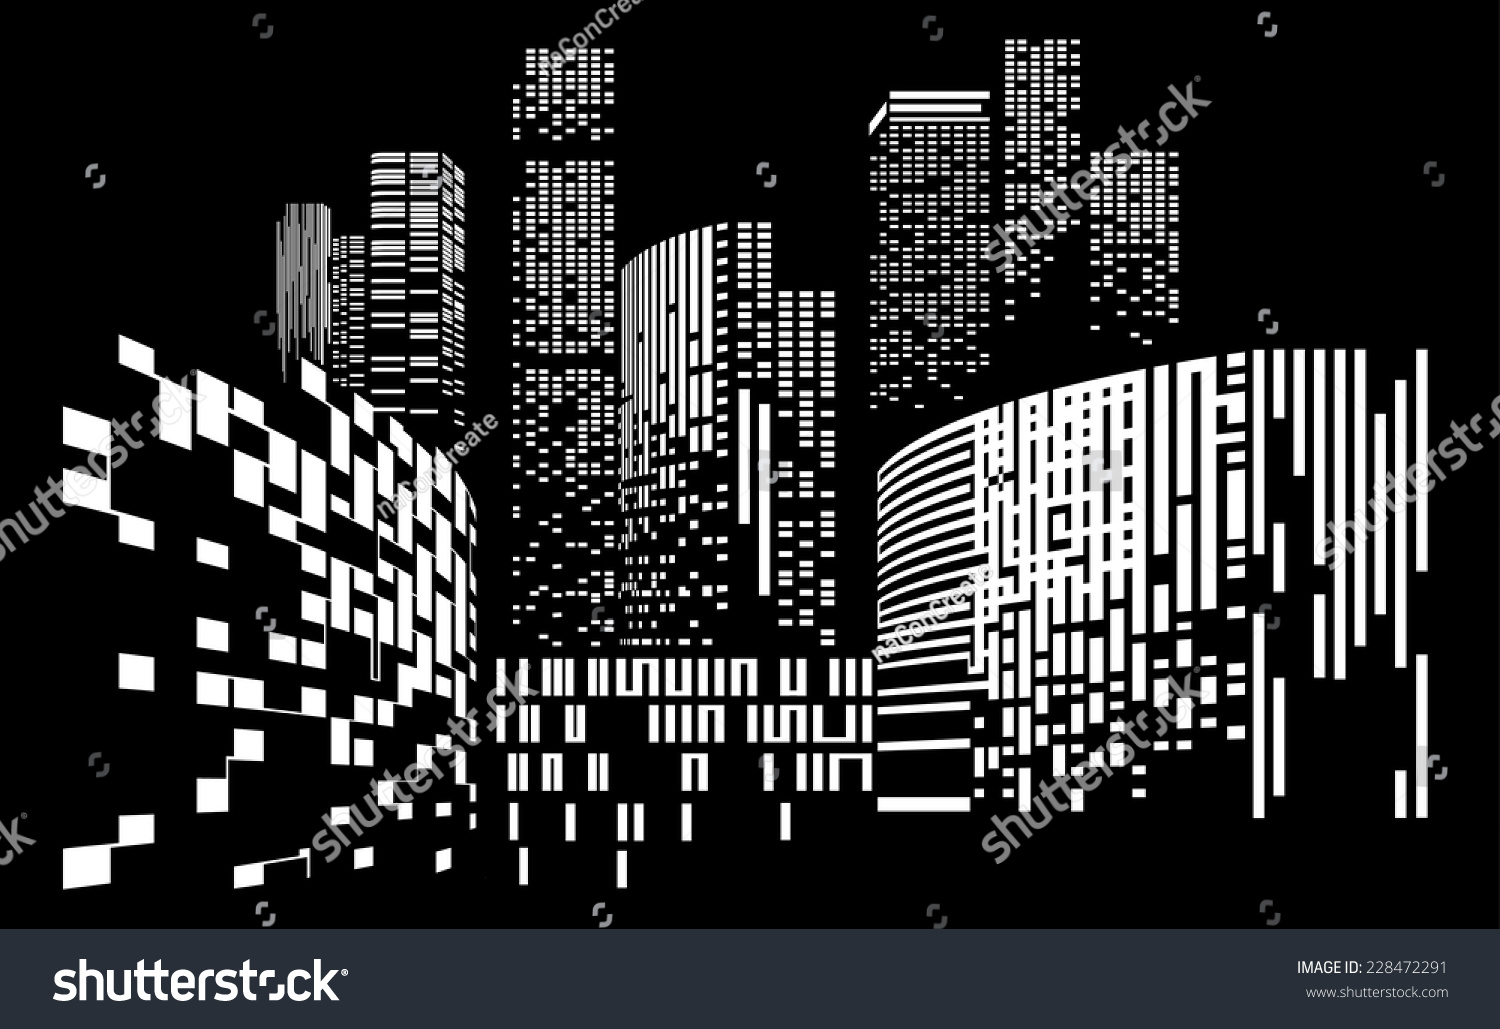 Eps10 Building And City Illustration At Night City Scene On Night